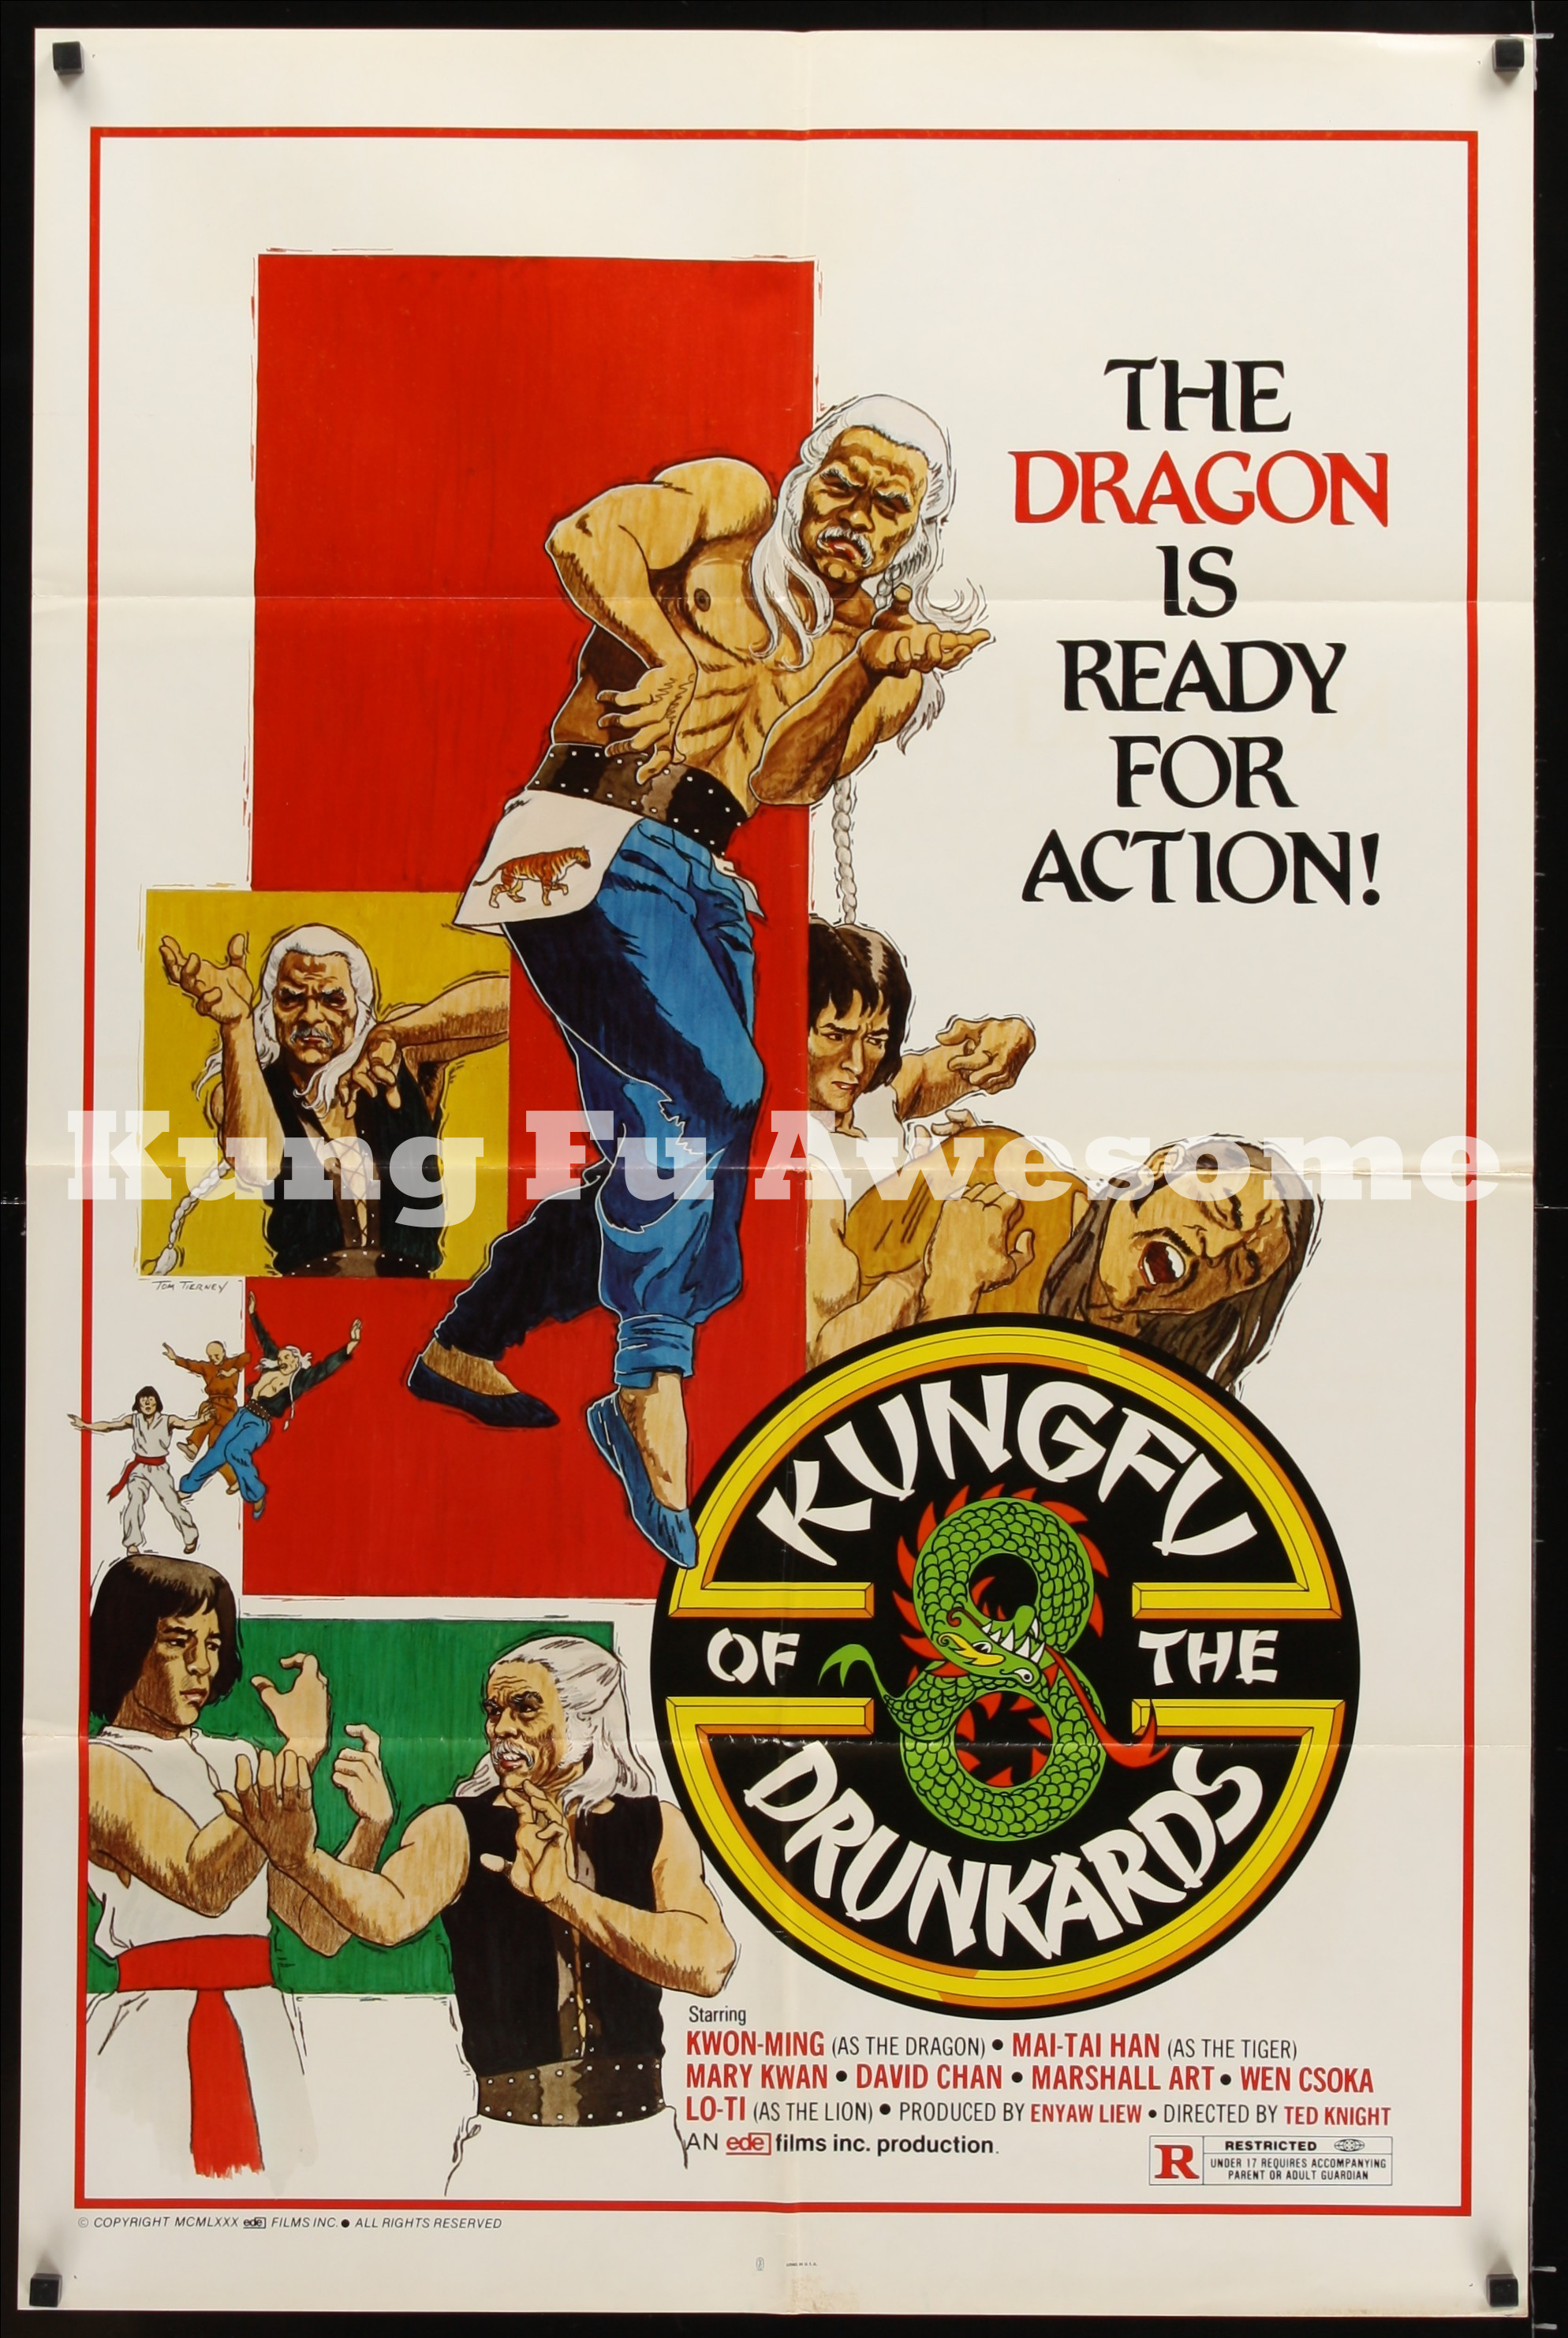 kung_fu_of_the_drunkards_dupe1_MF00089_L.jpg